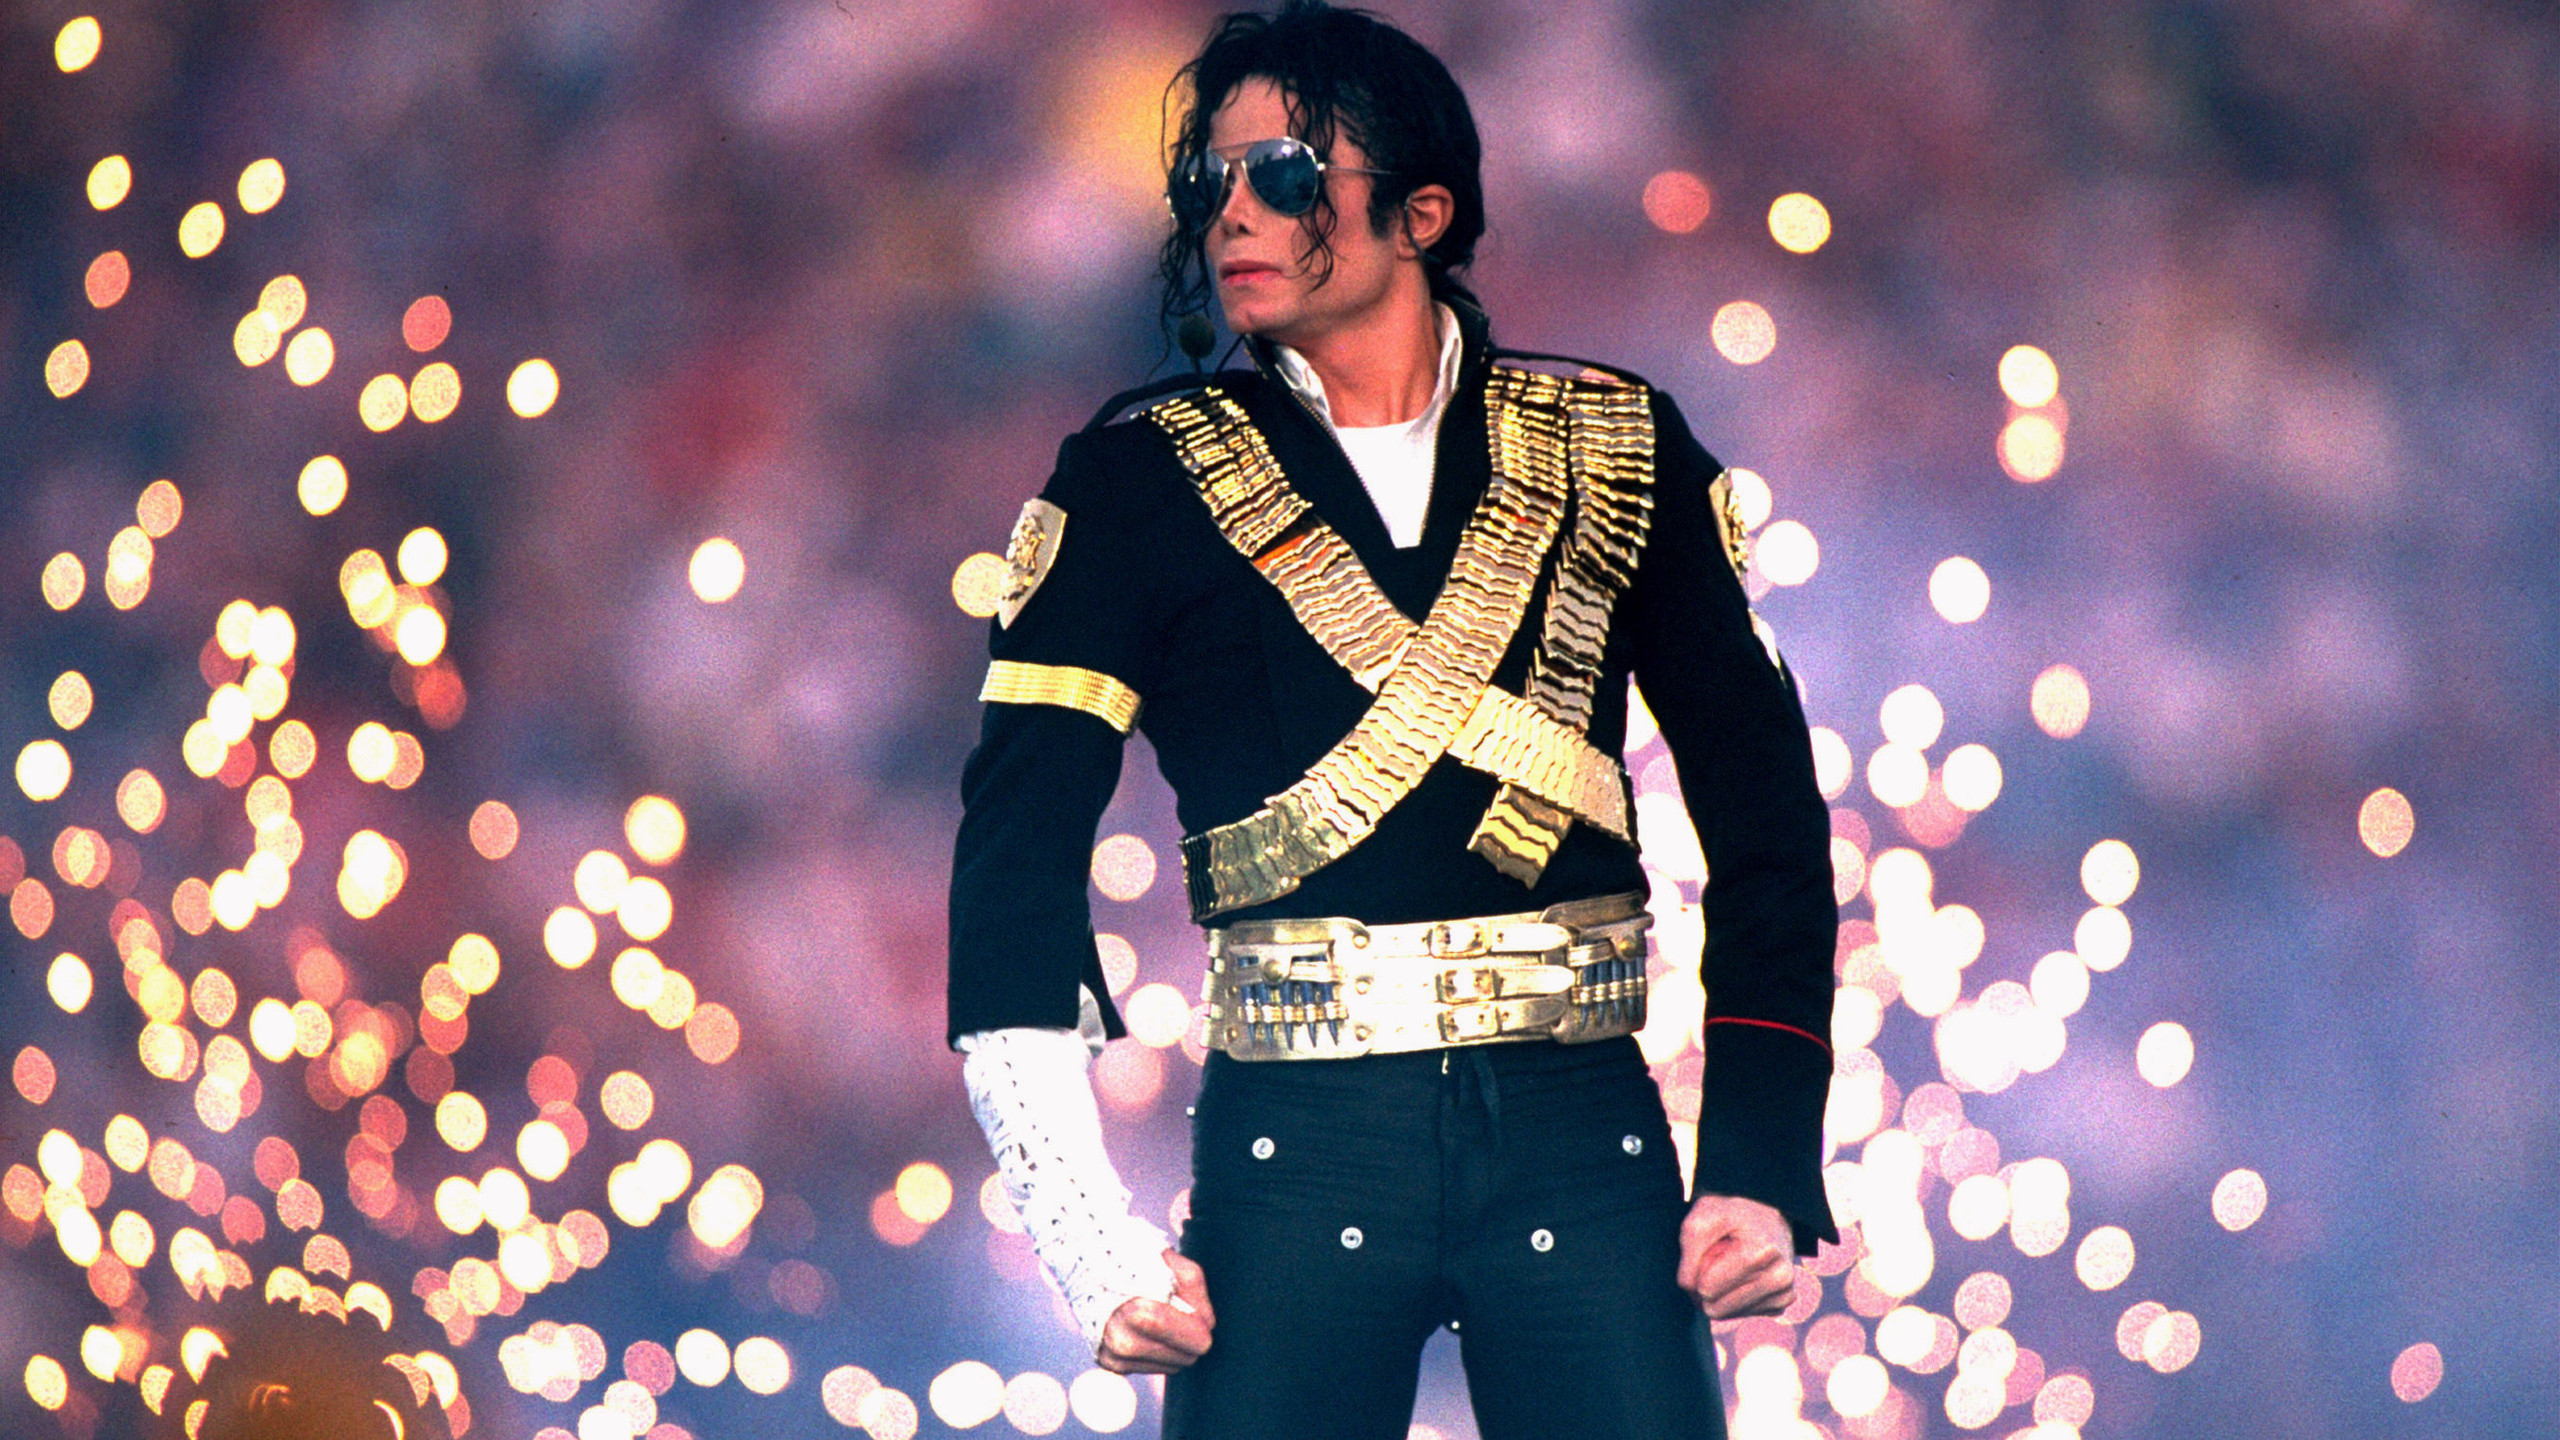 2560x1440 1080x1920 Michaels Wallpaper Fresh Michael Jackson Hd Wallpapers for iPhone  6 Impremedia